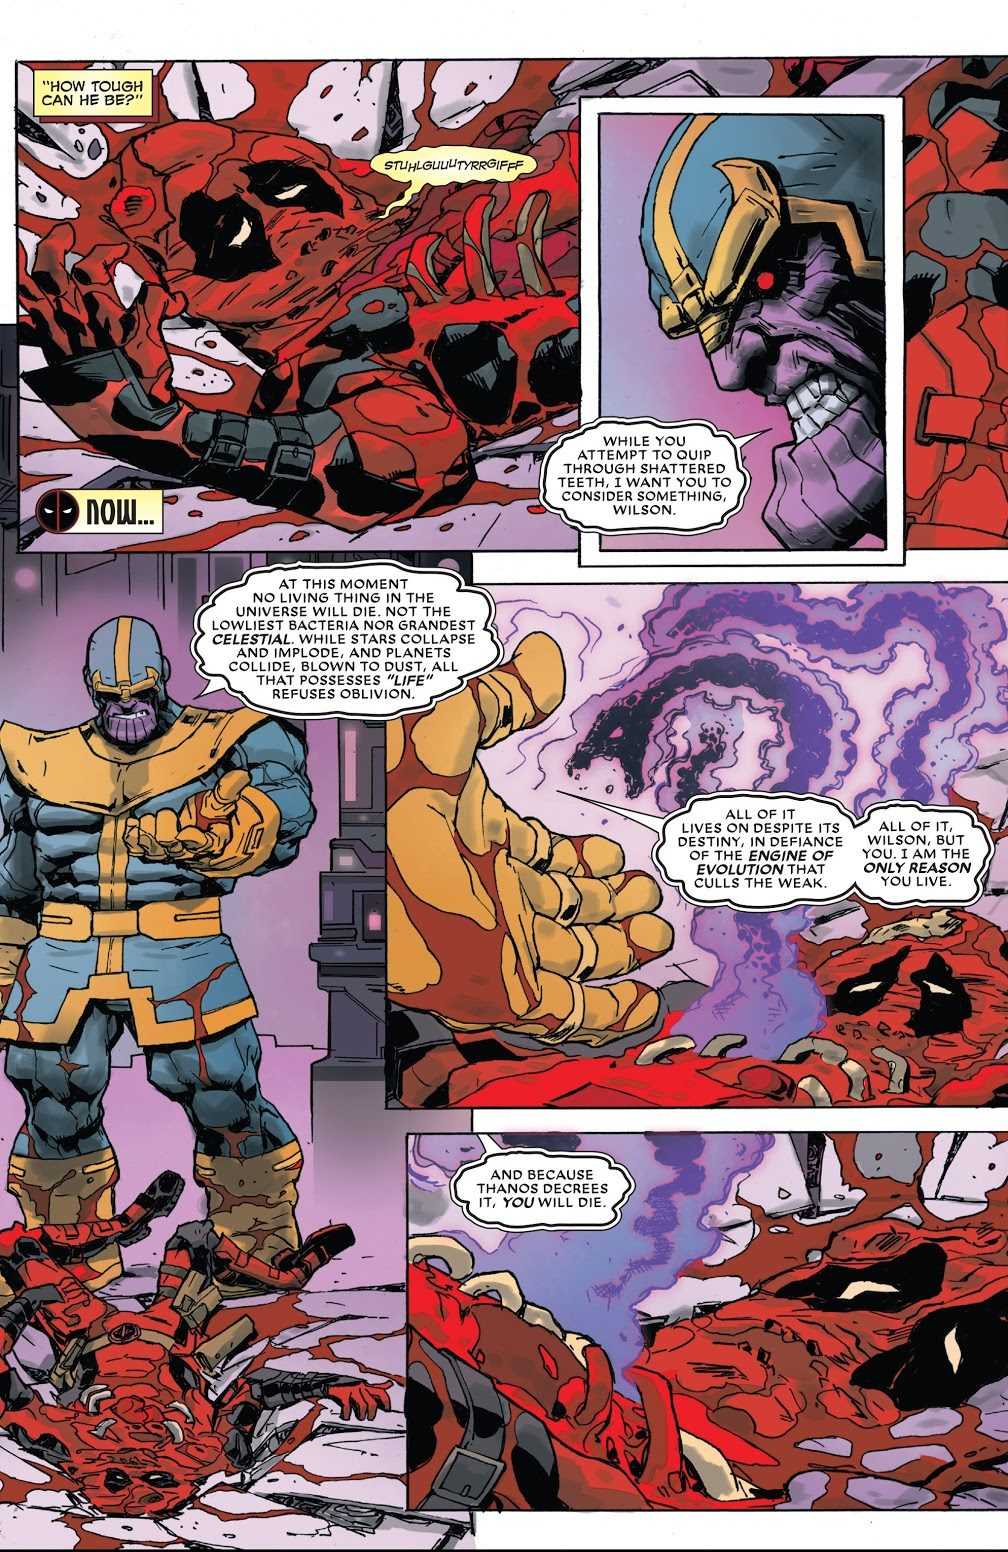 who can defeat thanos in the comics